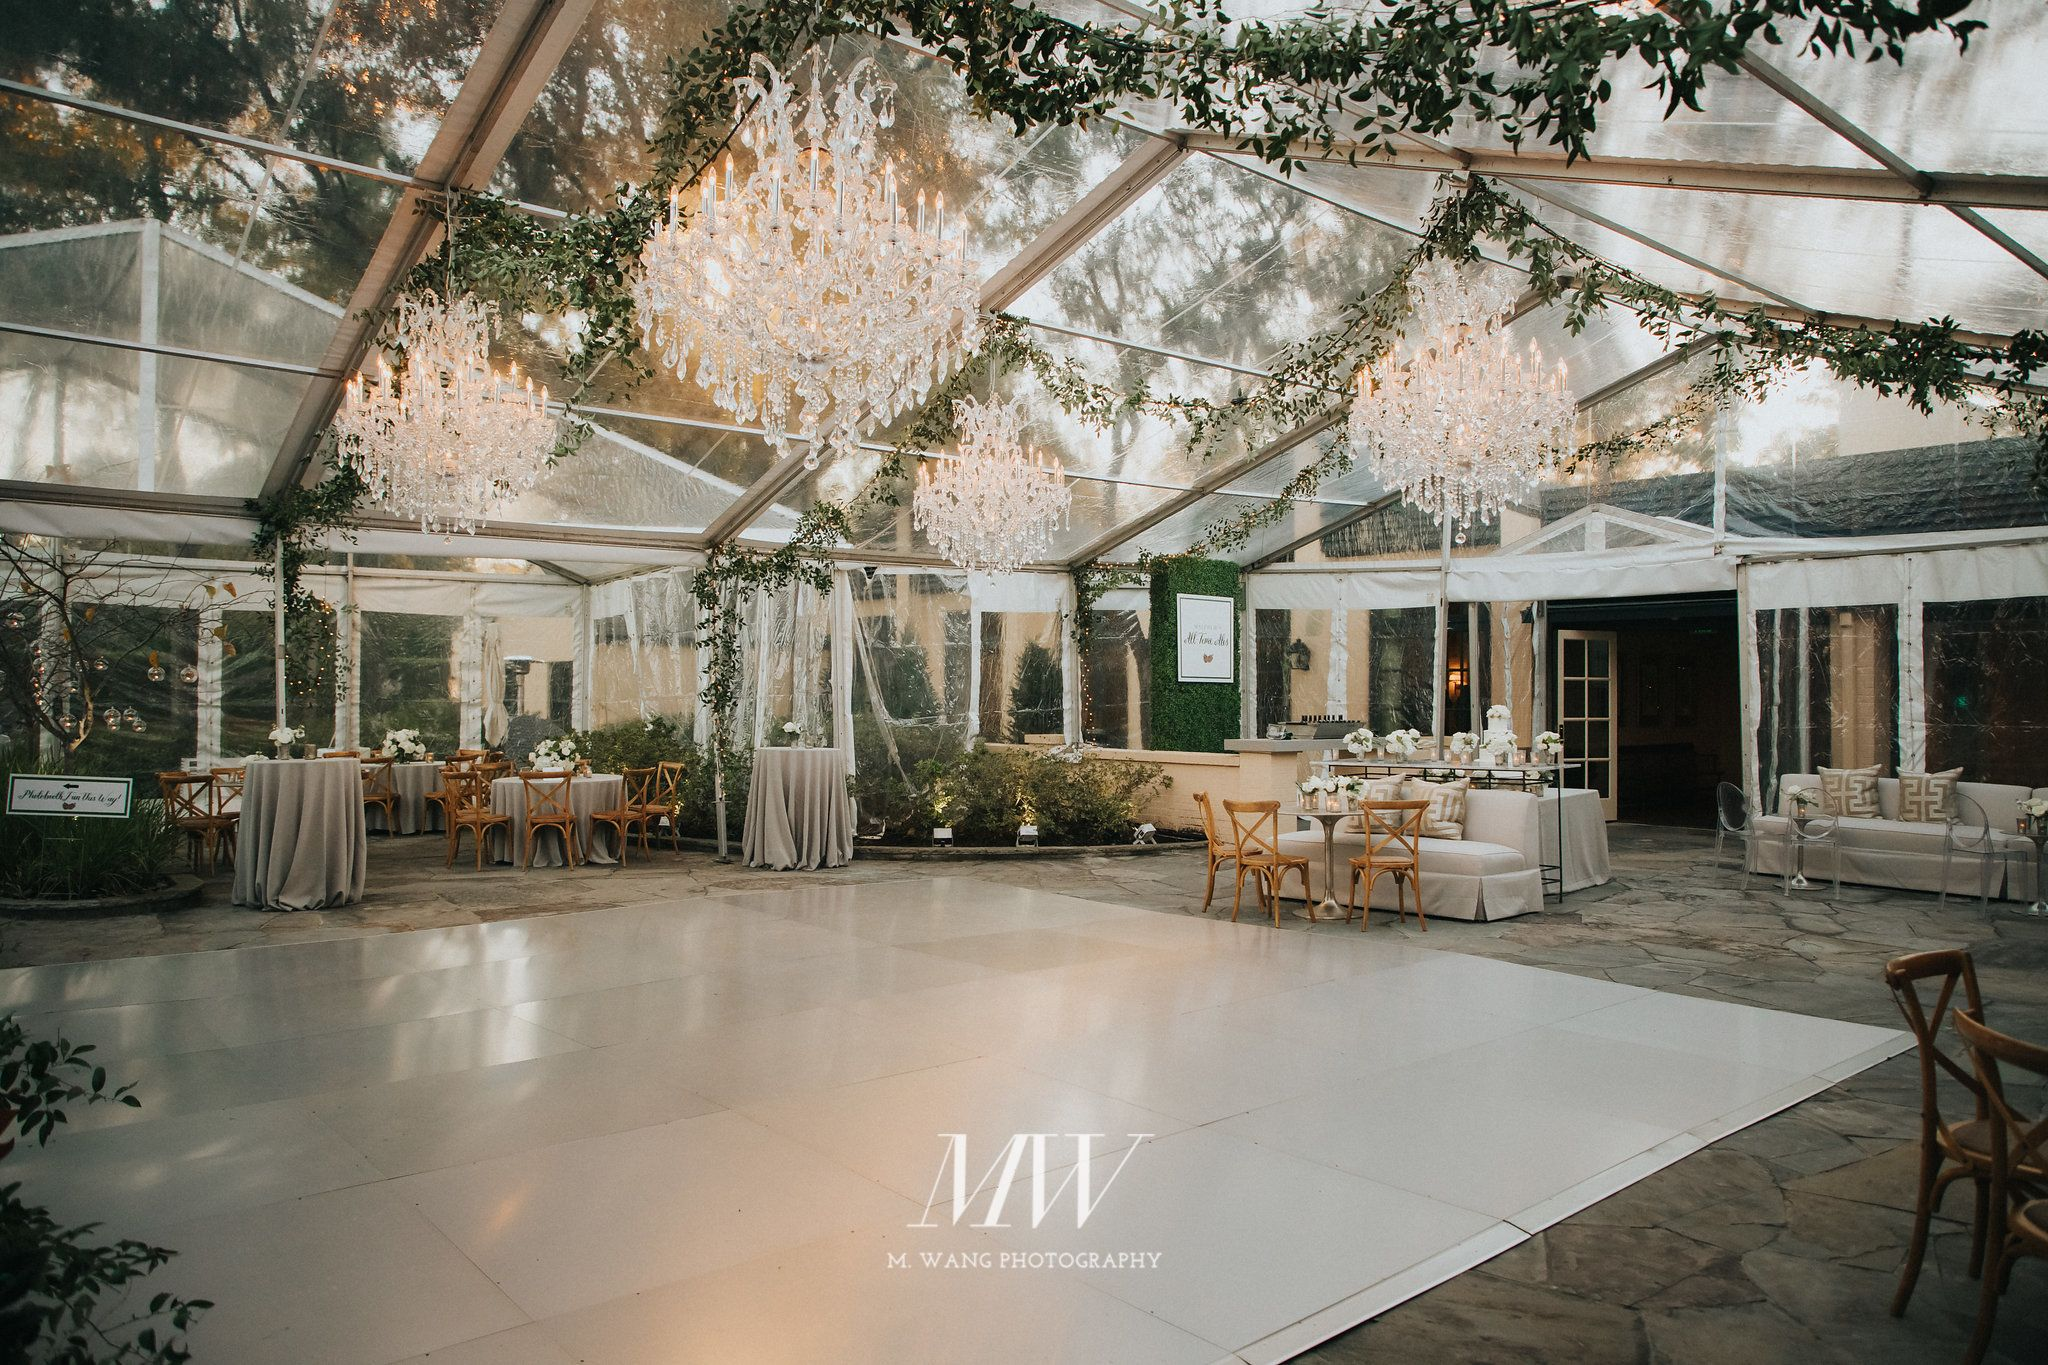 Clear tent with dance floor. House styles